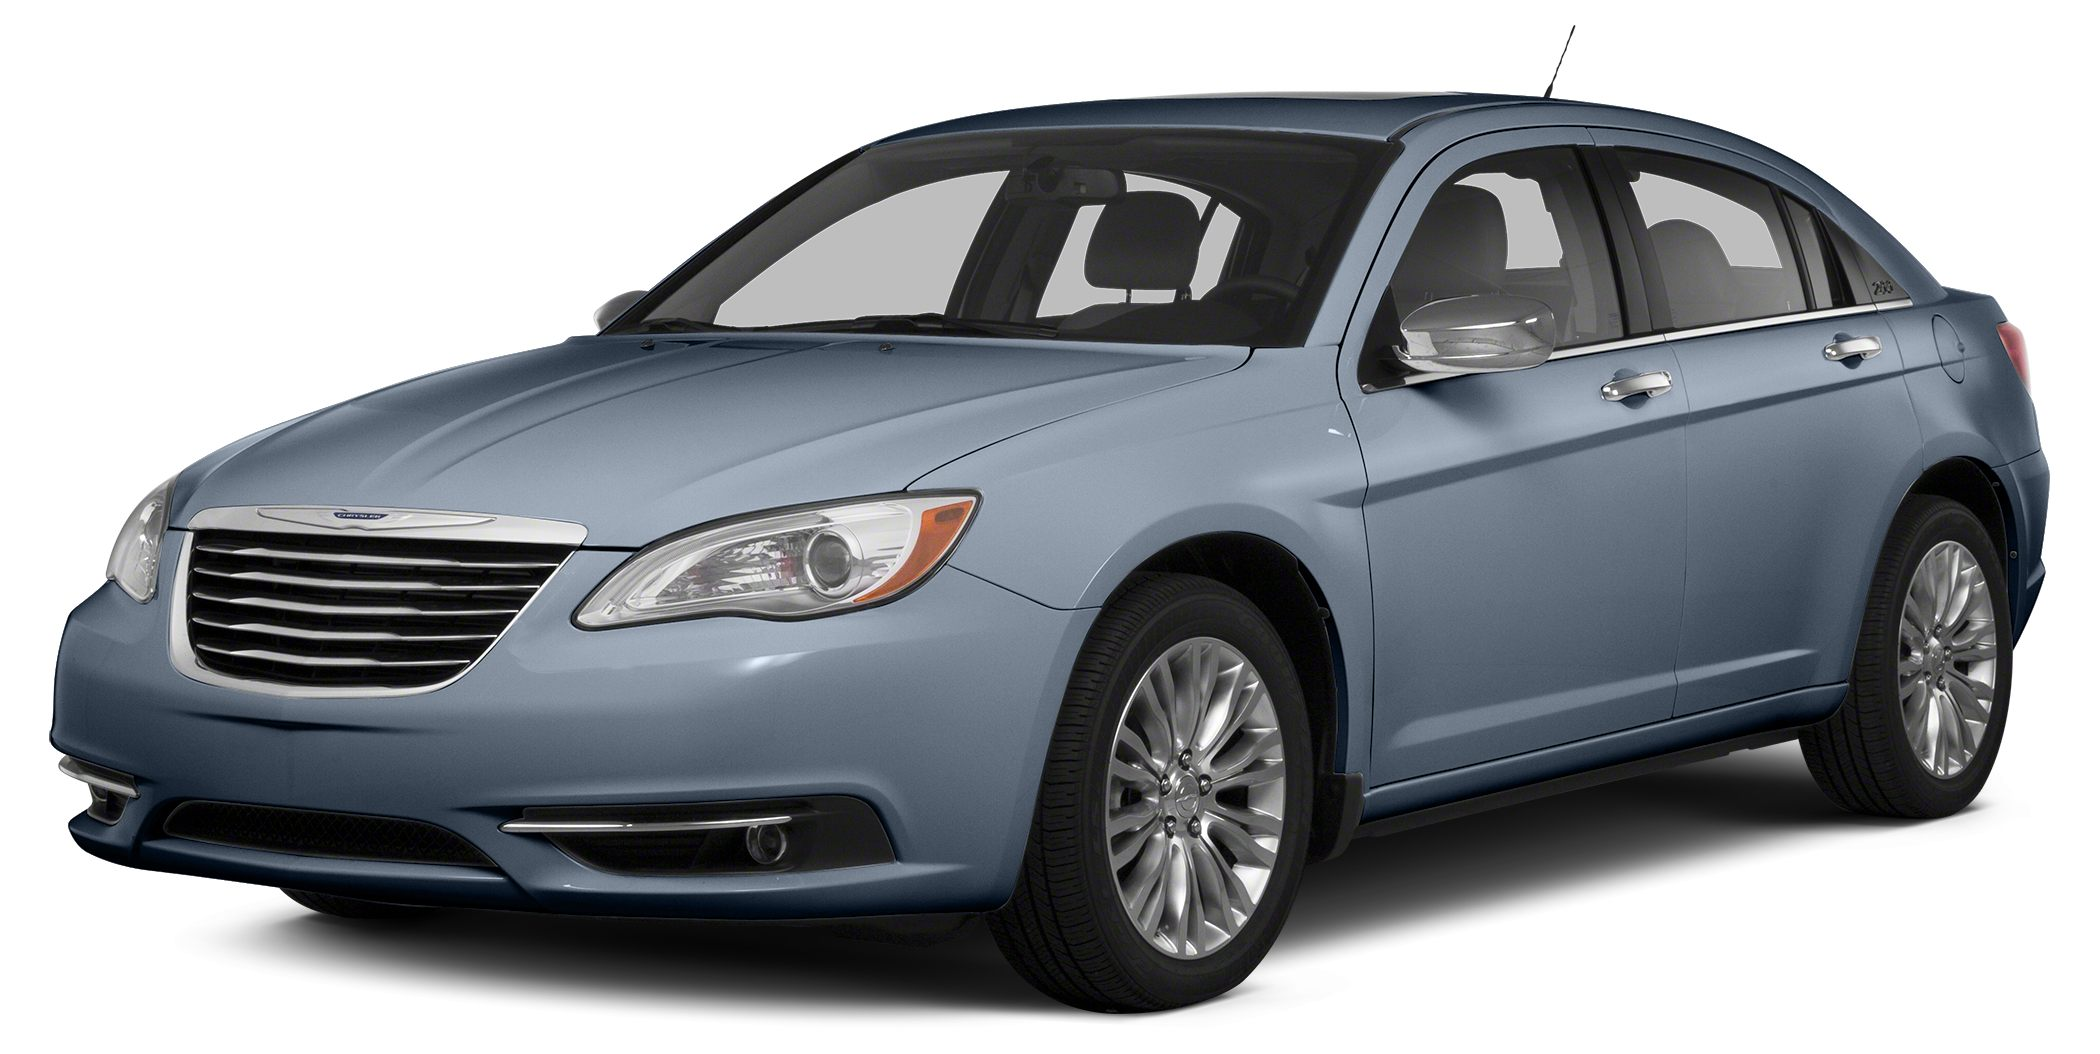 2014 Chrysler 200 LX Digital odometer and traction control all come equipped on this 2014 Chrysler